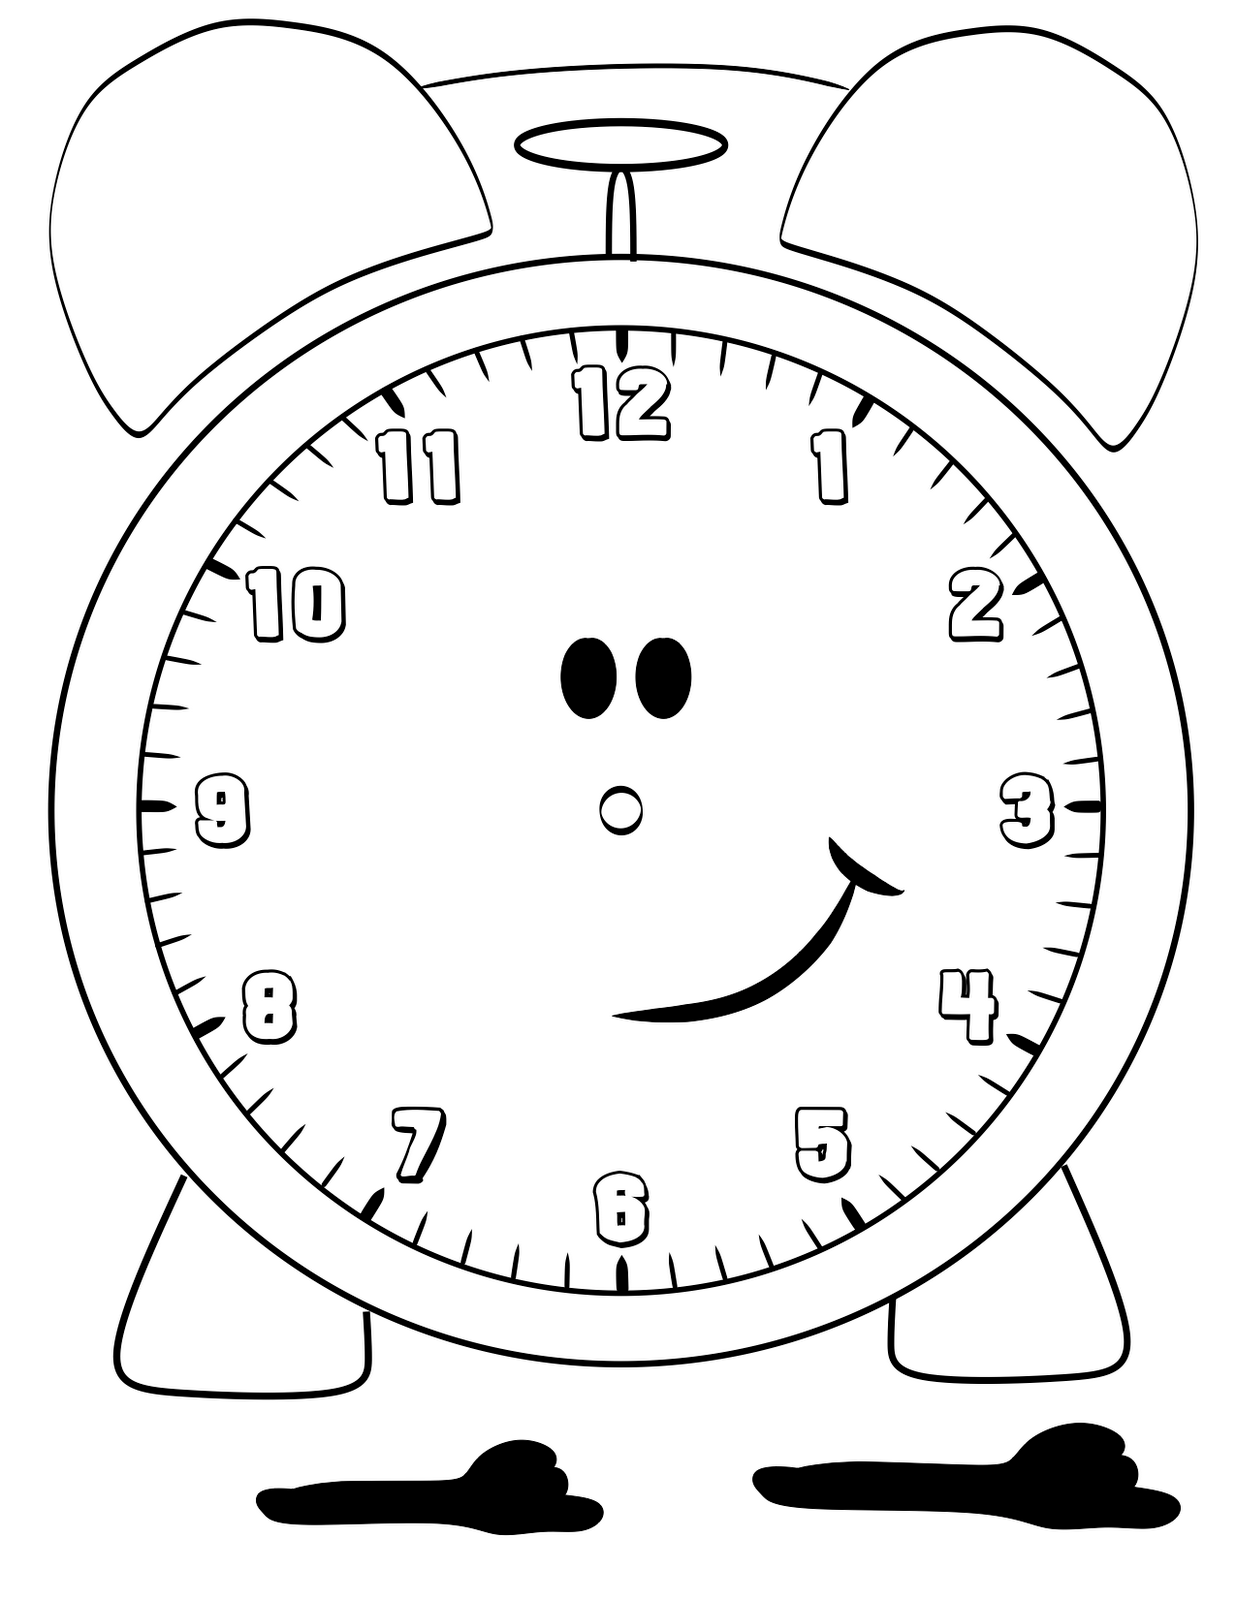 Clocks Of Different Shapes And Sizes Have Always